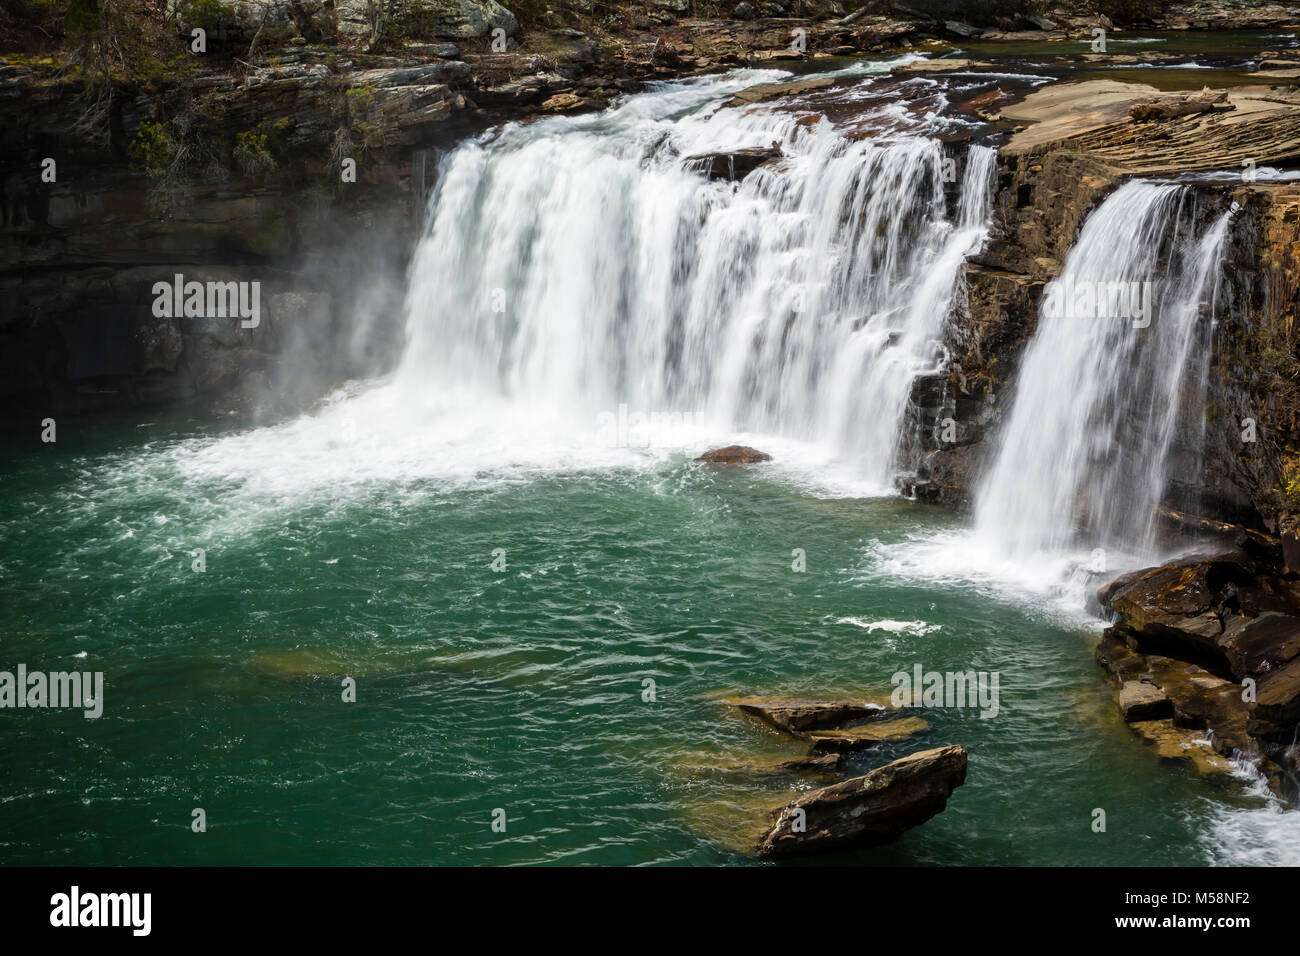 Little River Falls in Little River Canyon National Preserve, Alabama Stock Photo